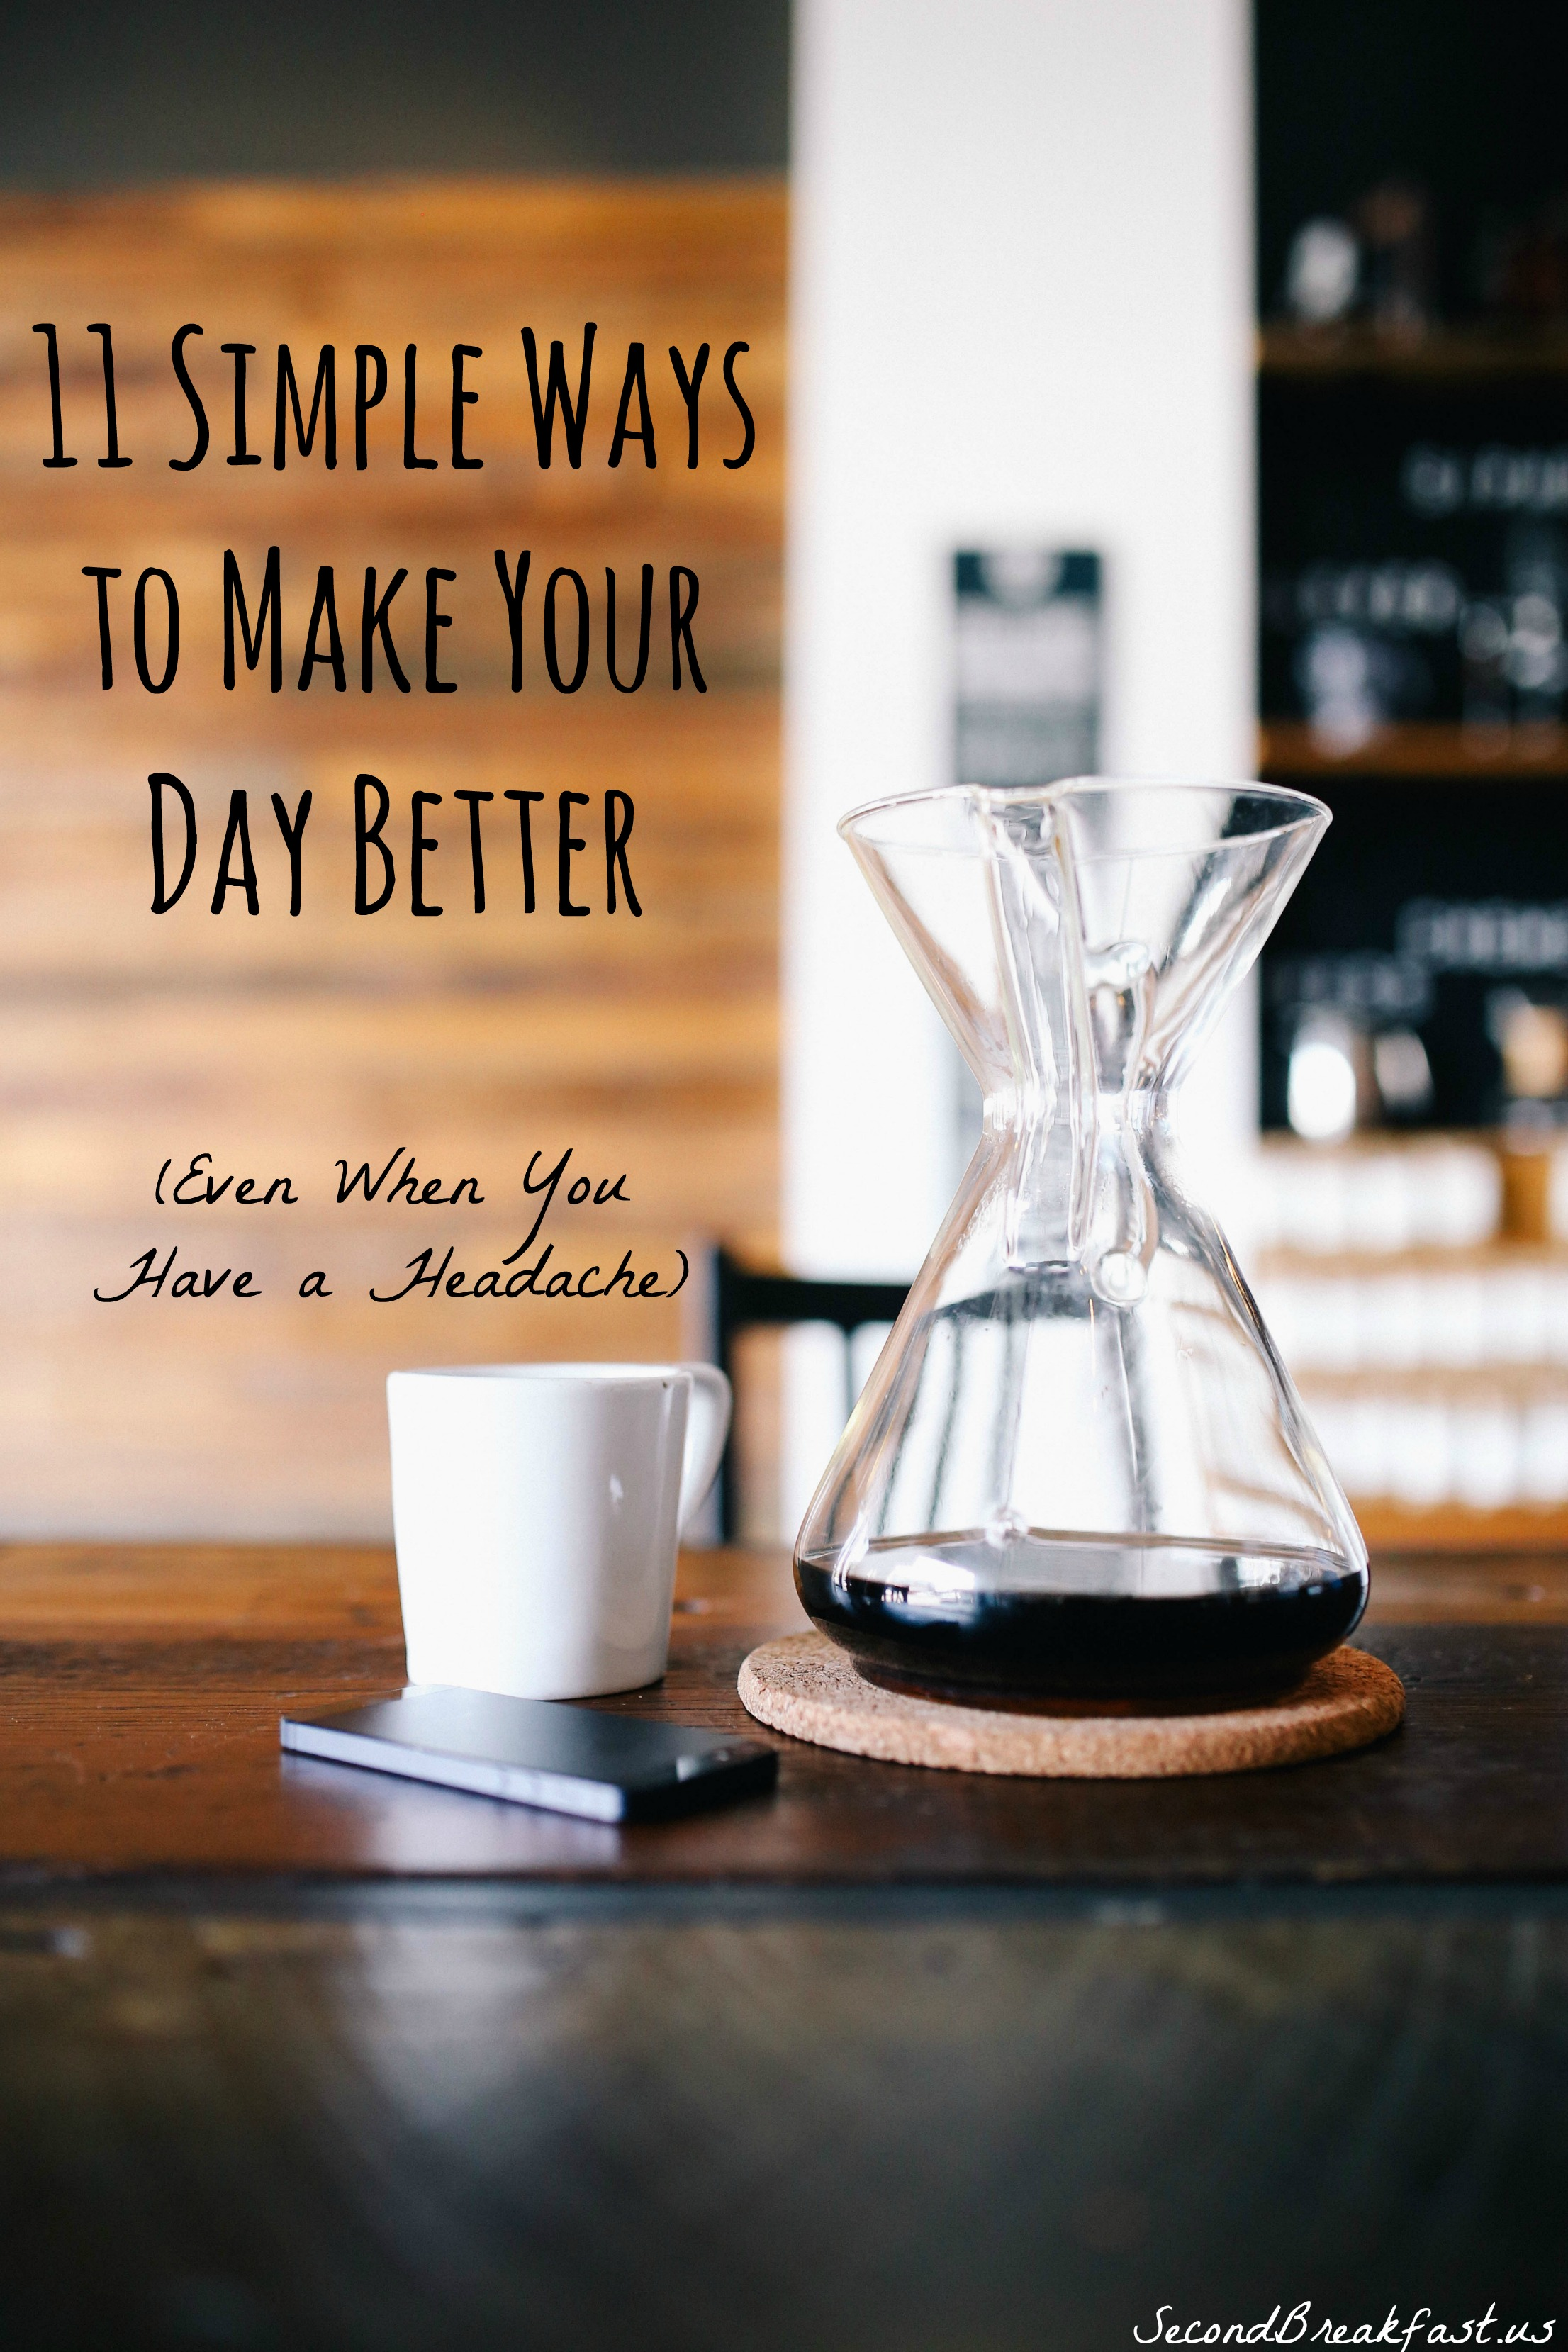 11 Simple Ways to Make Your Day Better (Even When You Have a Headache)